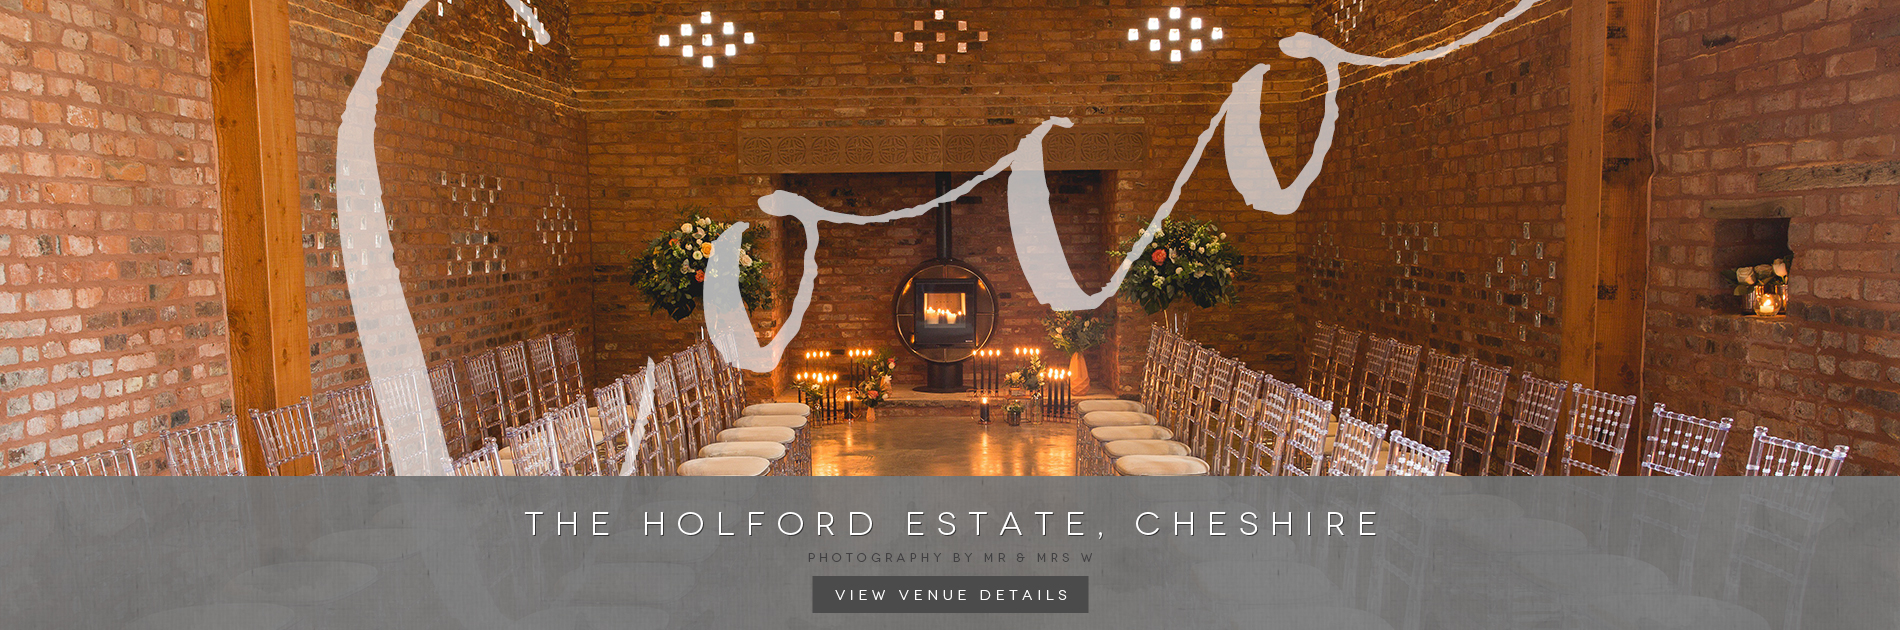 Coco wedding venues slideshow - barn-wedding-venues-in-cheshire-the-holford-estate-january-2016